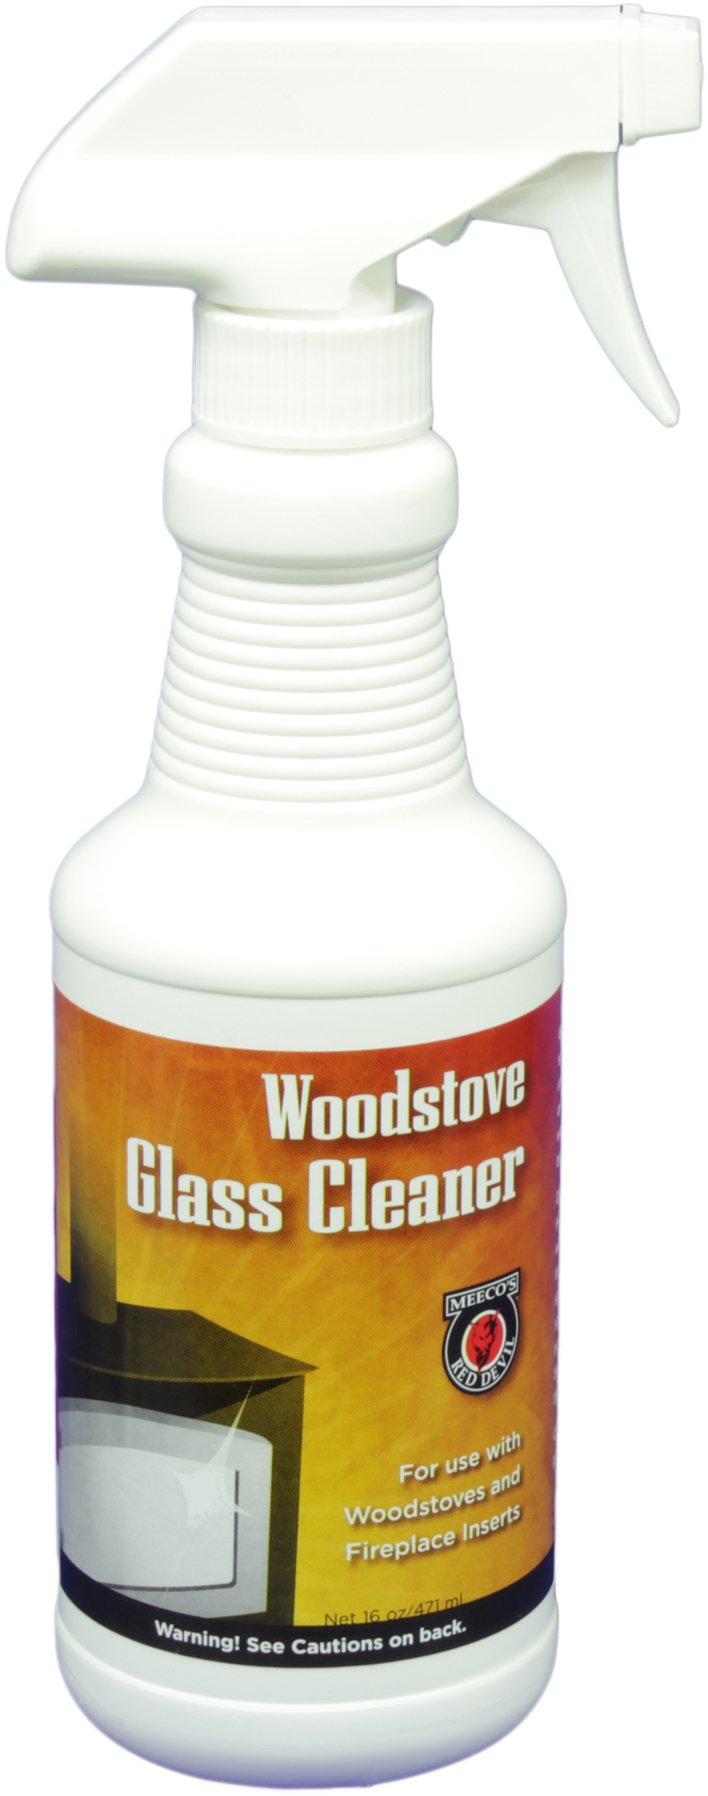 Amazon.com: Csl Pellet Stove Cleaner 3.5 lbs: Health & Personal Care